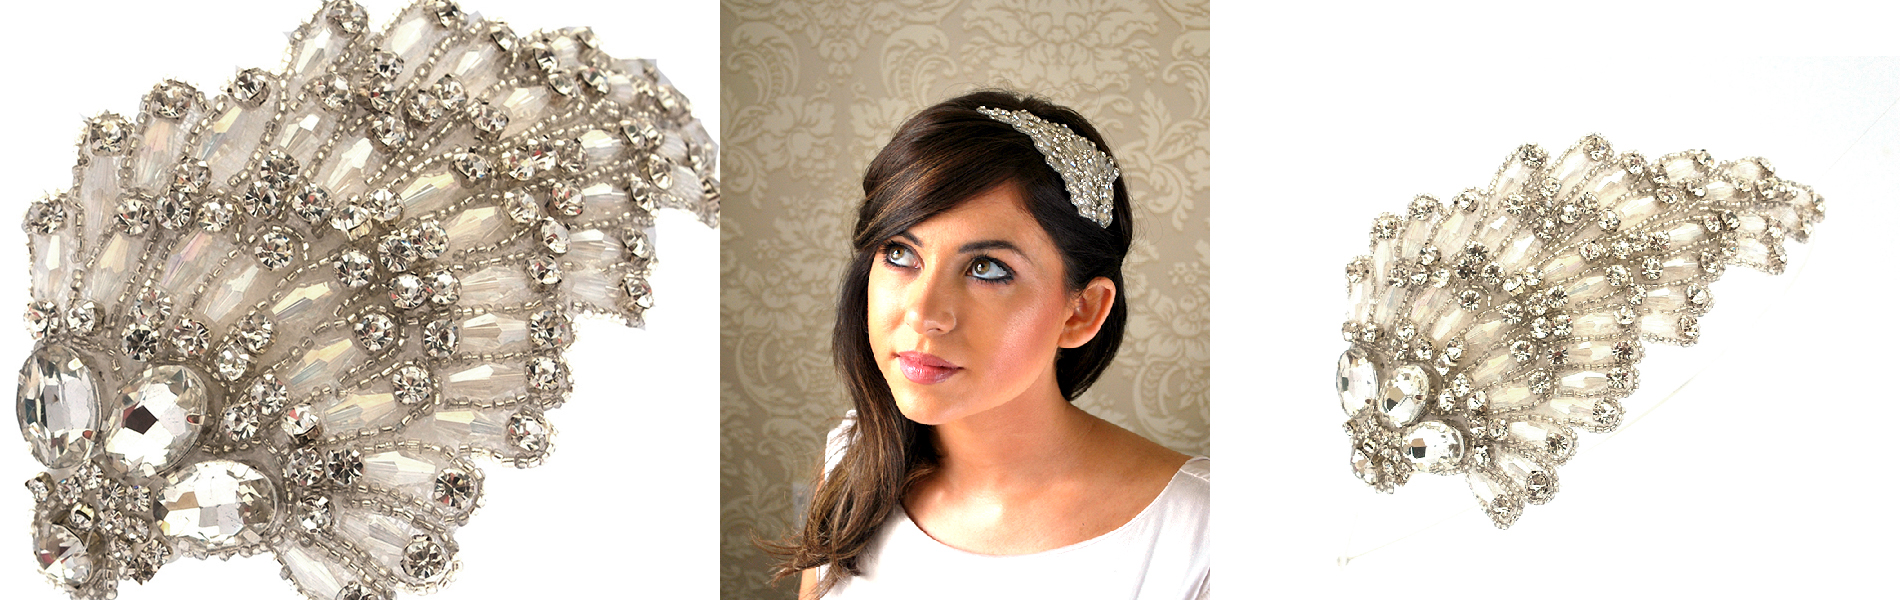 Be Bespoke Bridal Headpieces Ireland - Bridal headwear and wedding accessories buy online from the styled collections or have a custom piece designed and made just for you